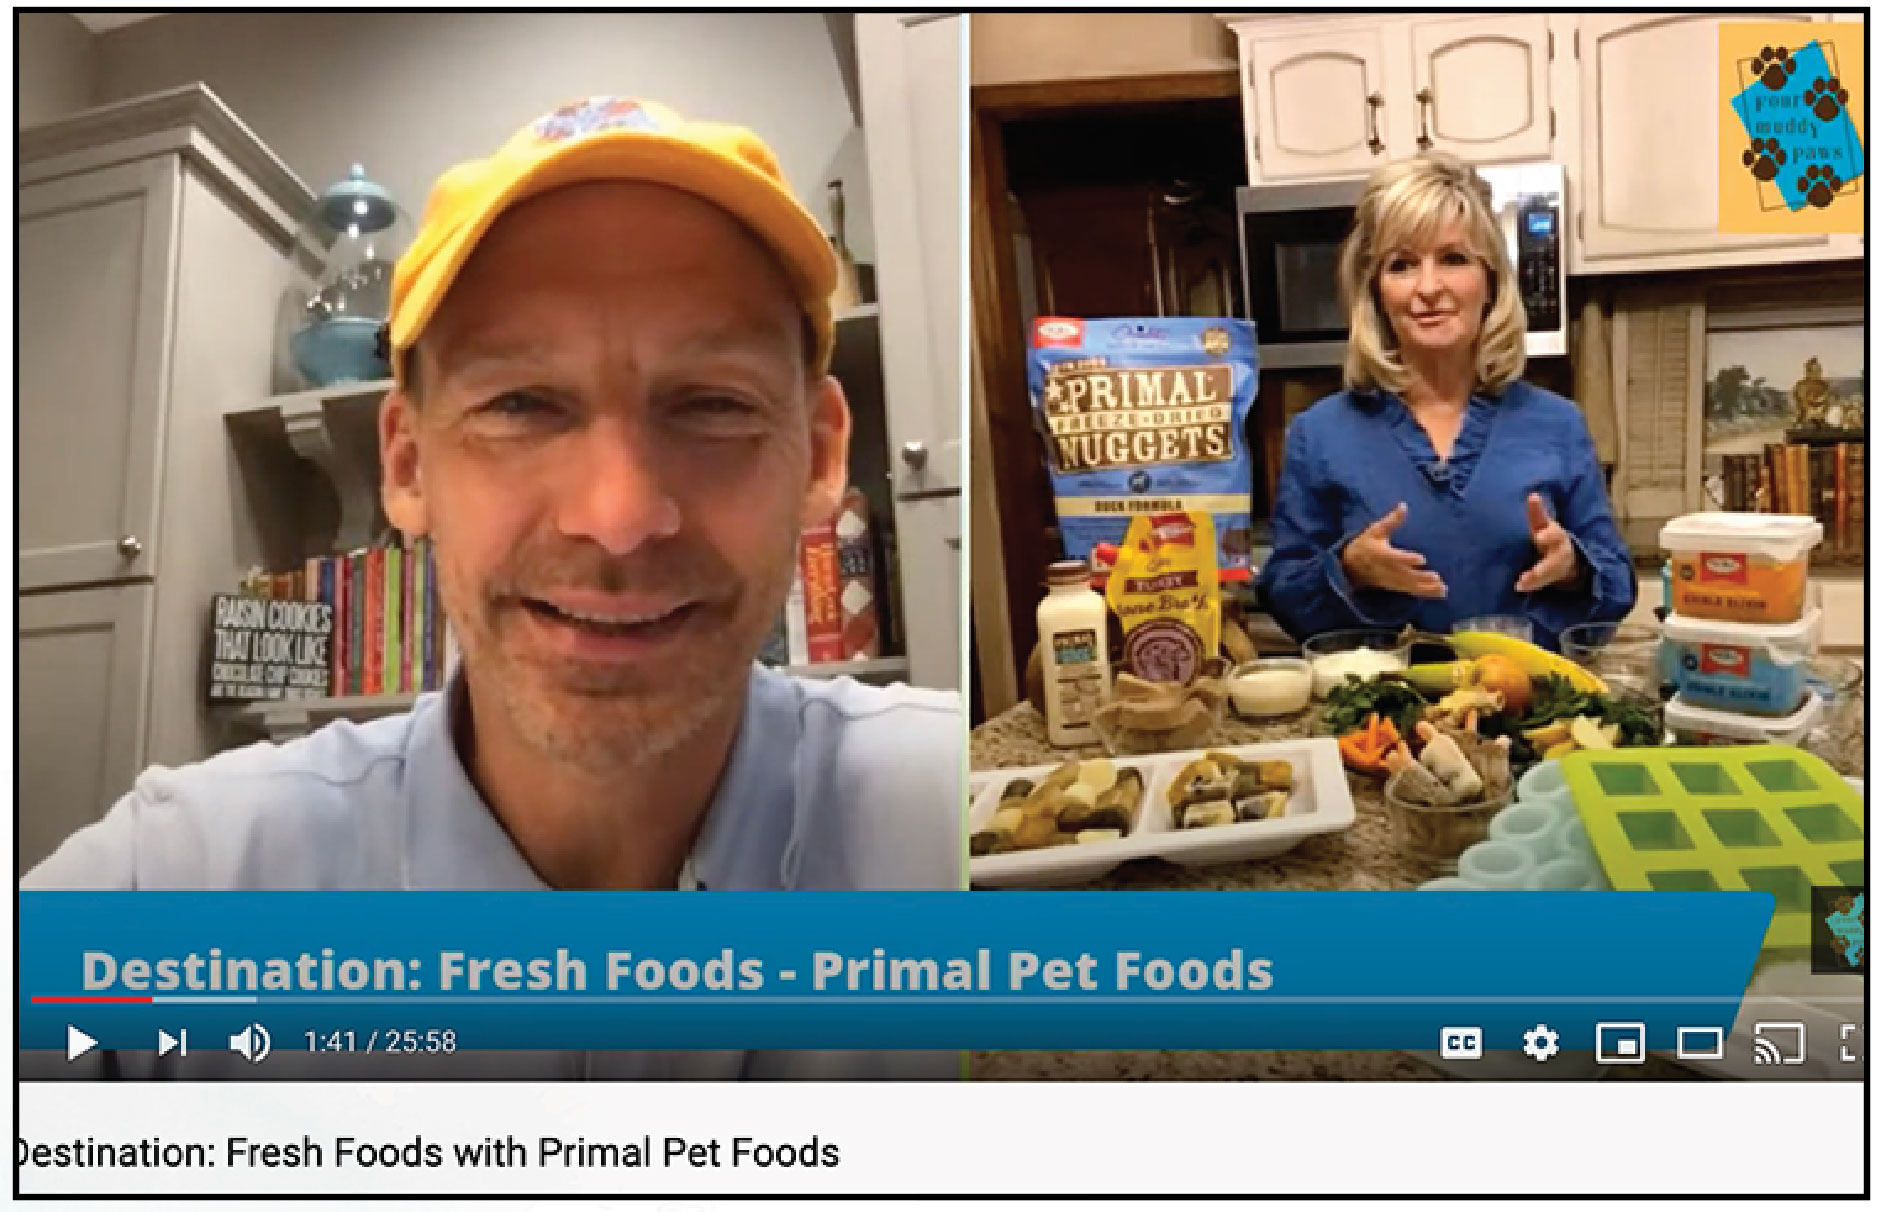 Jeffrey Jensen interviews Aundra Hedges from Primal Pet Foods